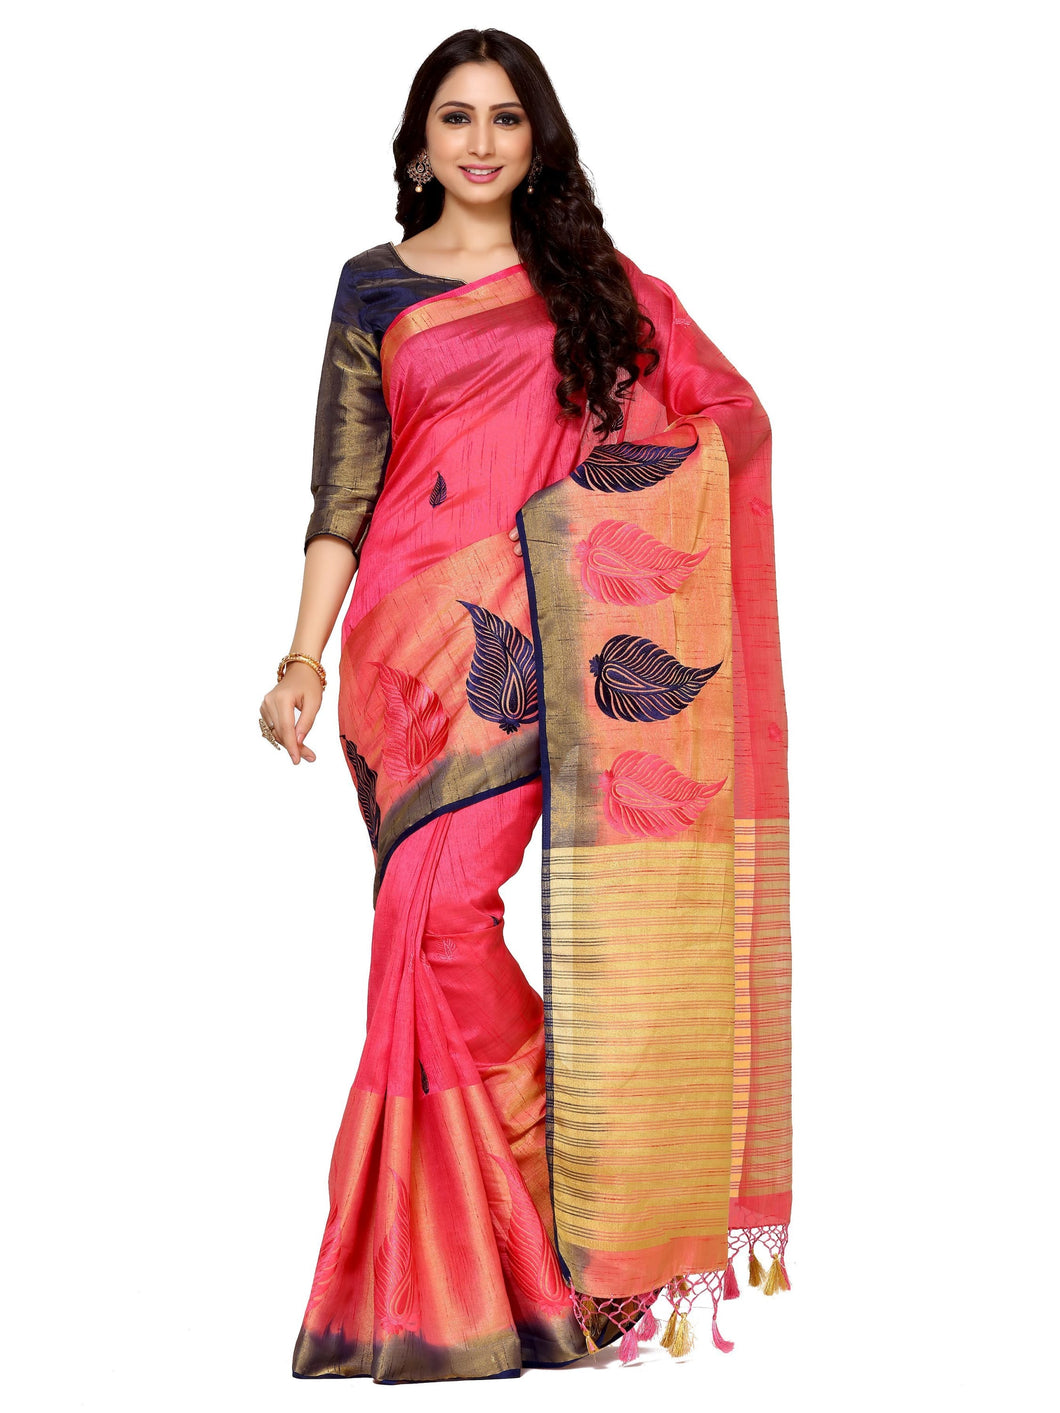 MIMOSA Leaf Design Hand Embroidery Work Tussar Silk Saree with Blouse in Color Strawberry (4095-2124-adl-emb-strw-nvy) - kupindaindia